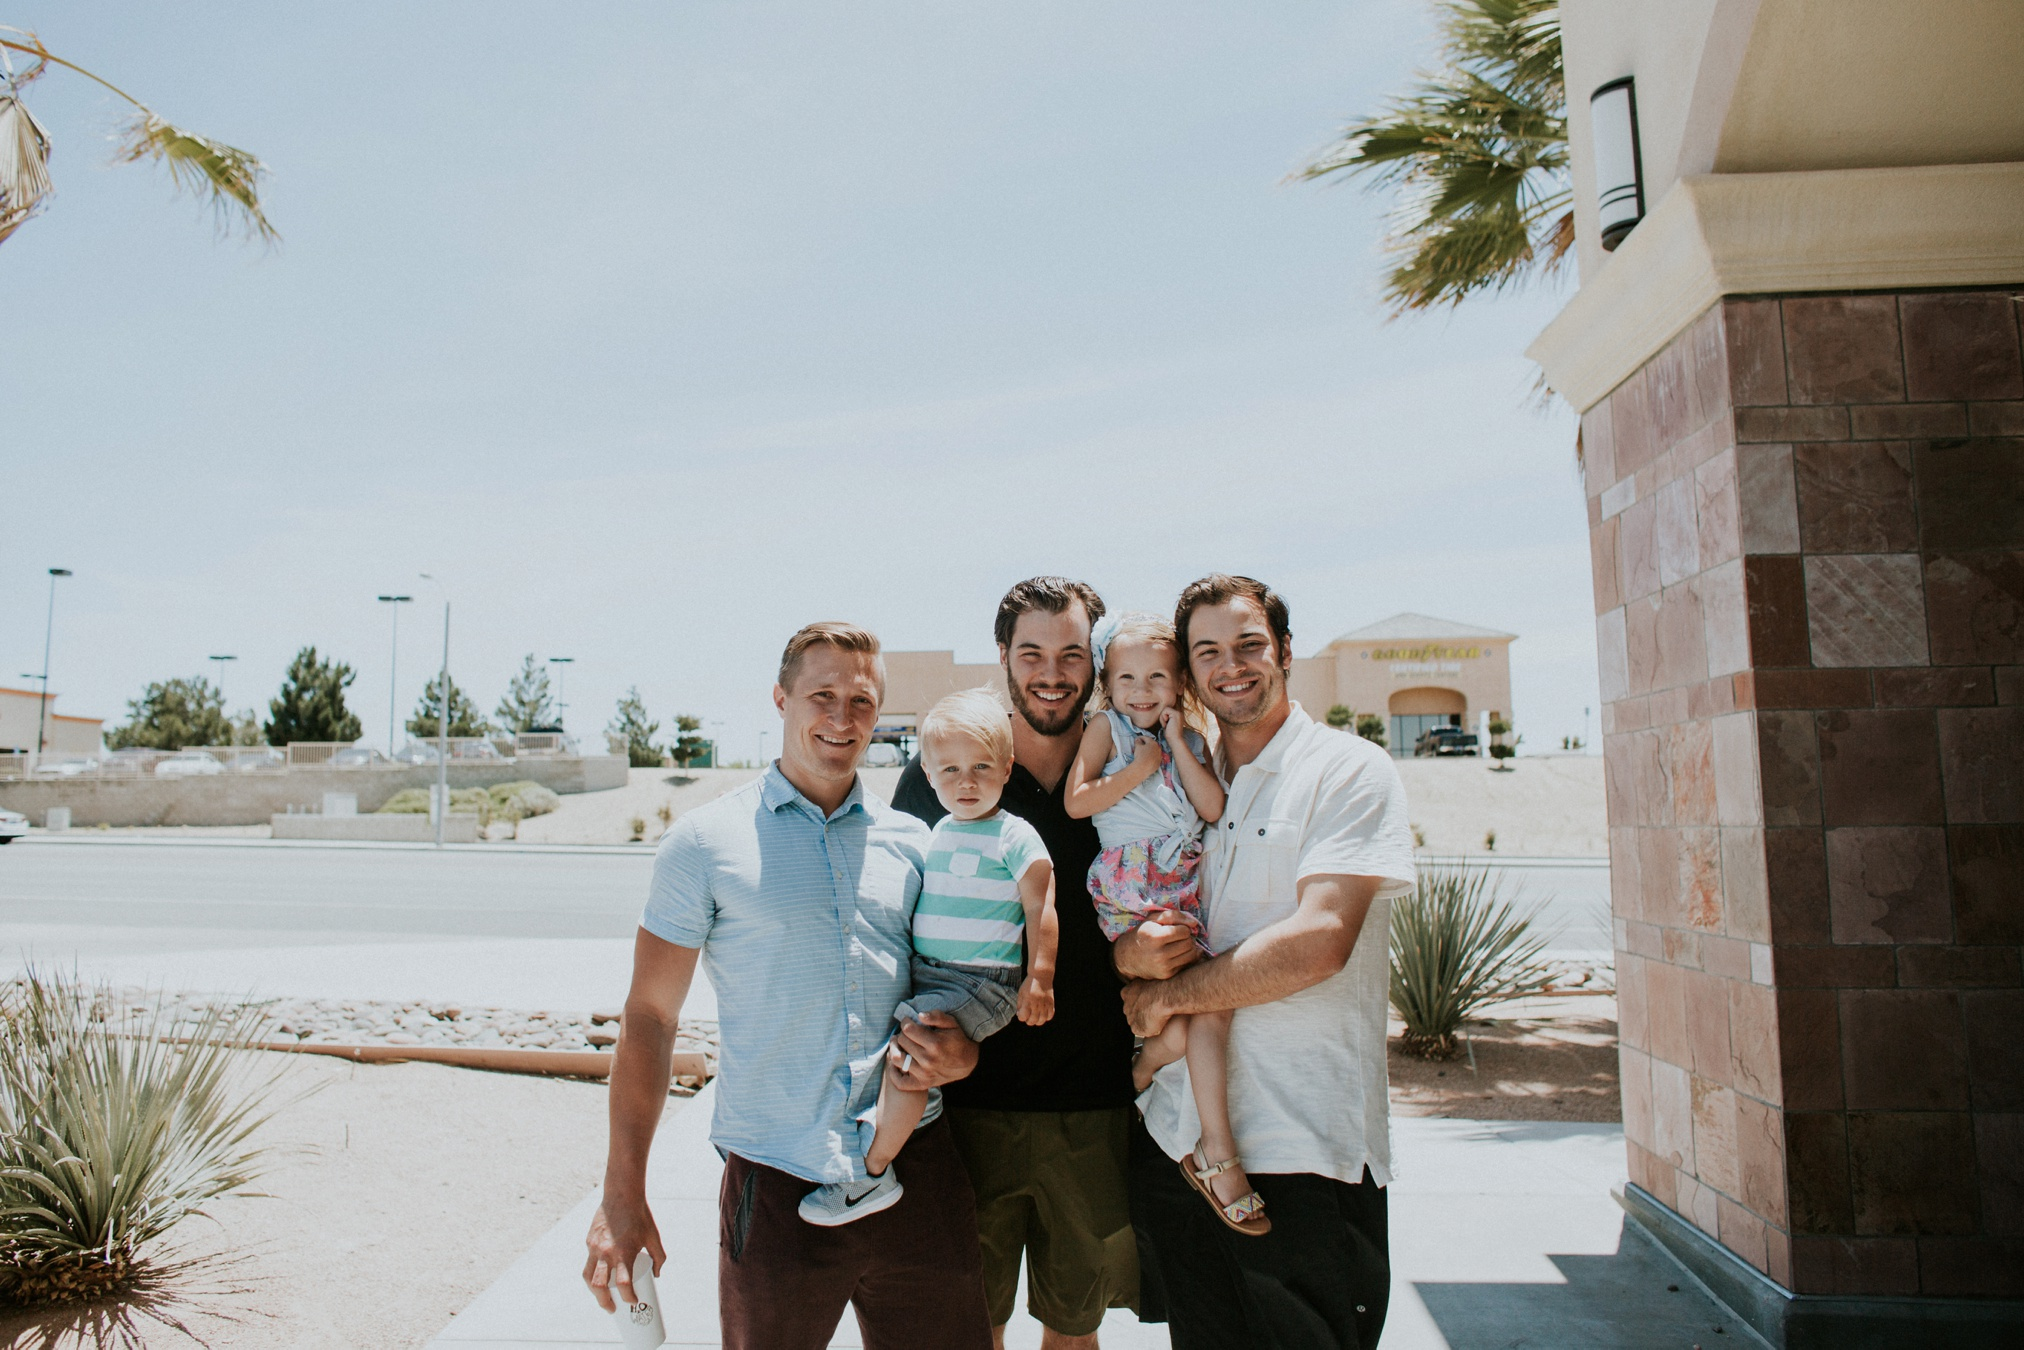 This day was not well documented for the morning. Getting out of Las Vegas was rough. But stopping 4 hours into driving, hitting Victorville, CA to see these two was worth getting the camera back out! :)